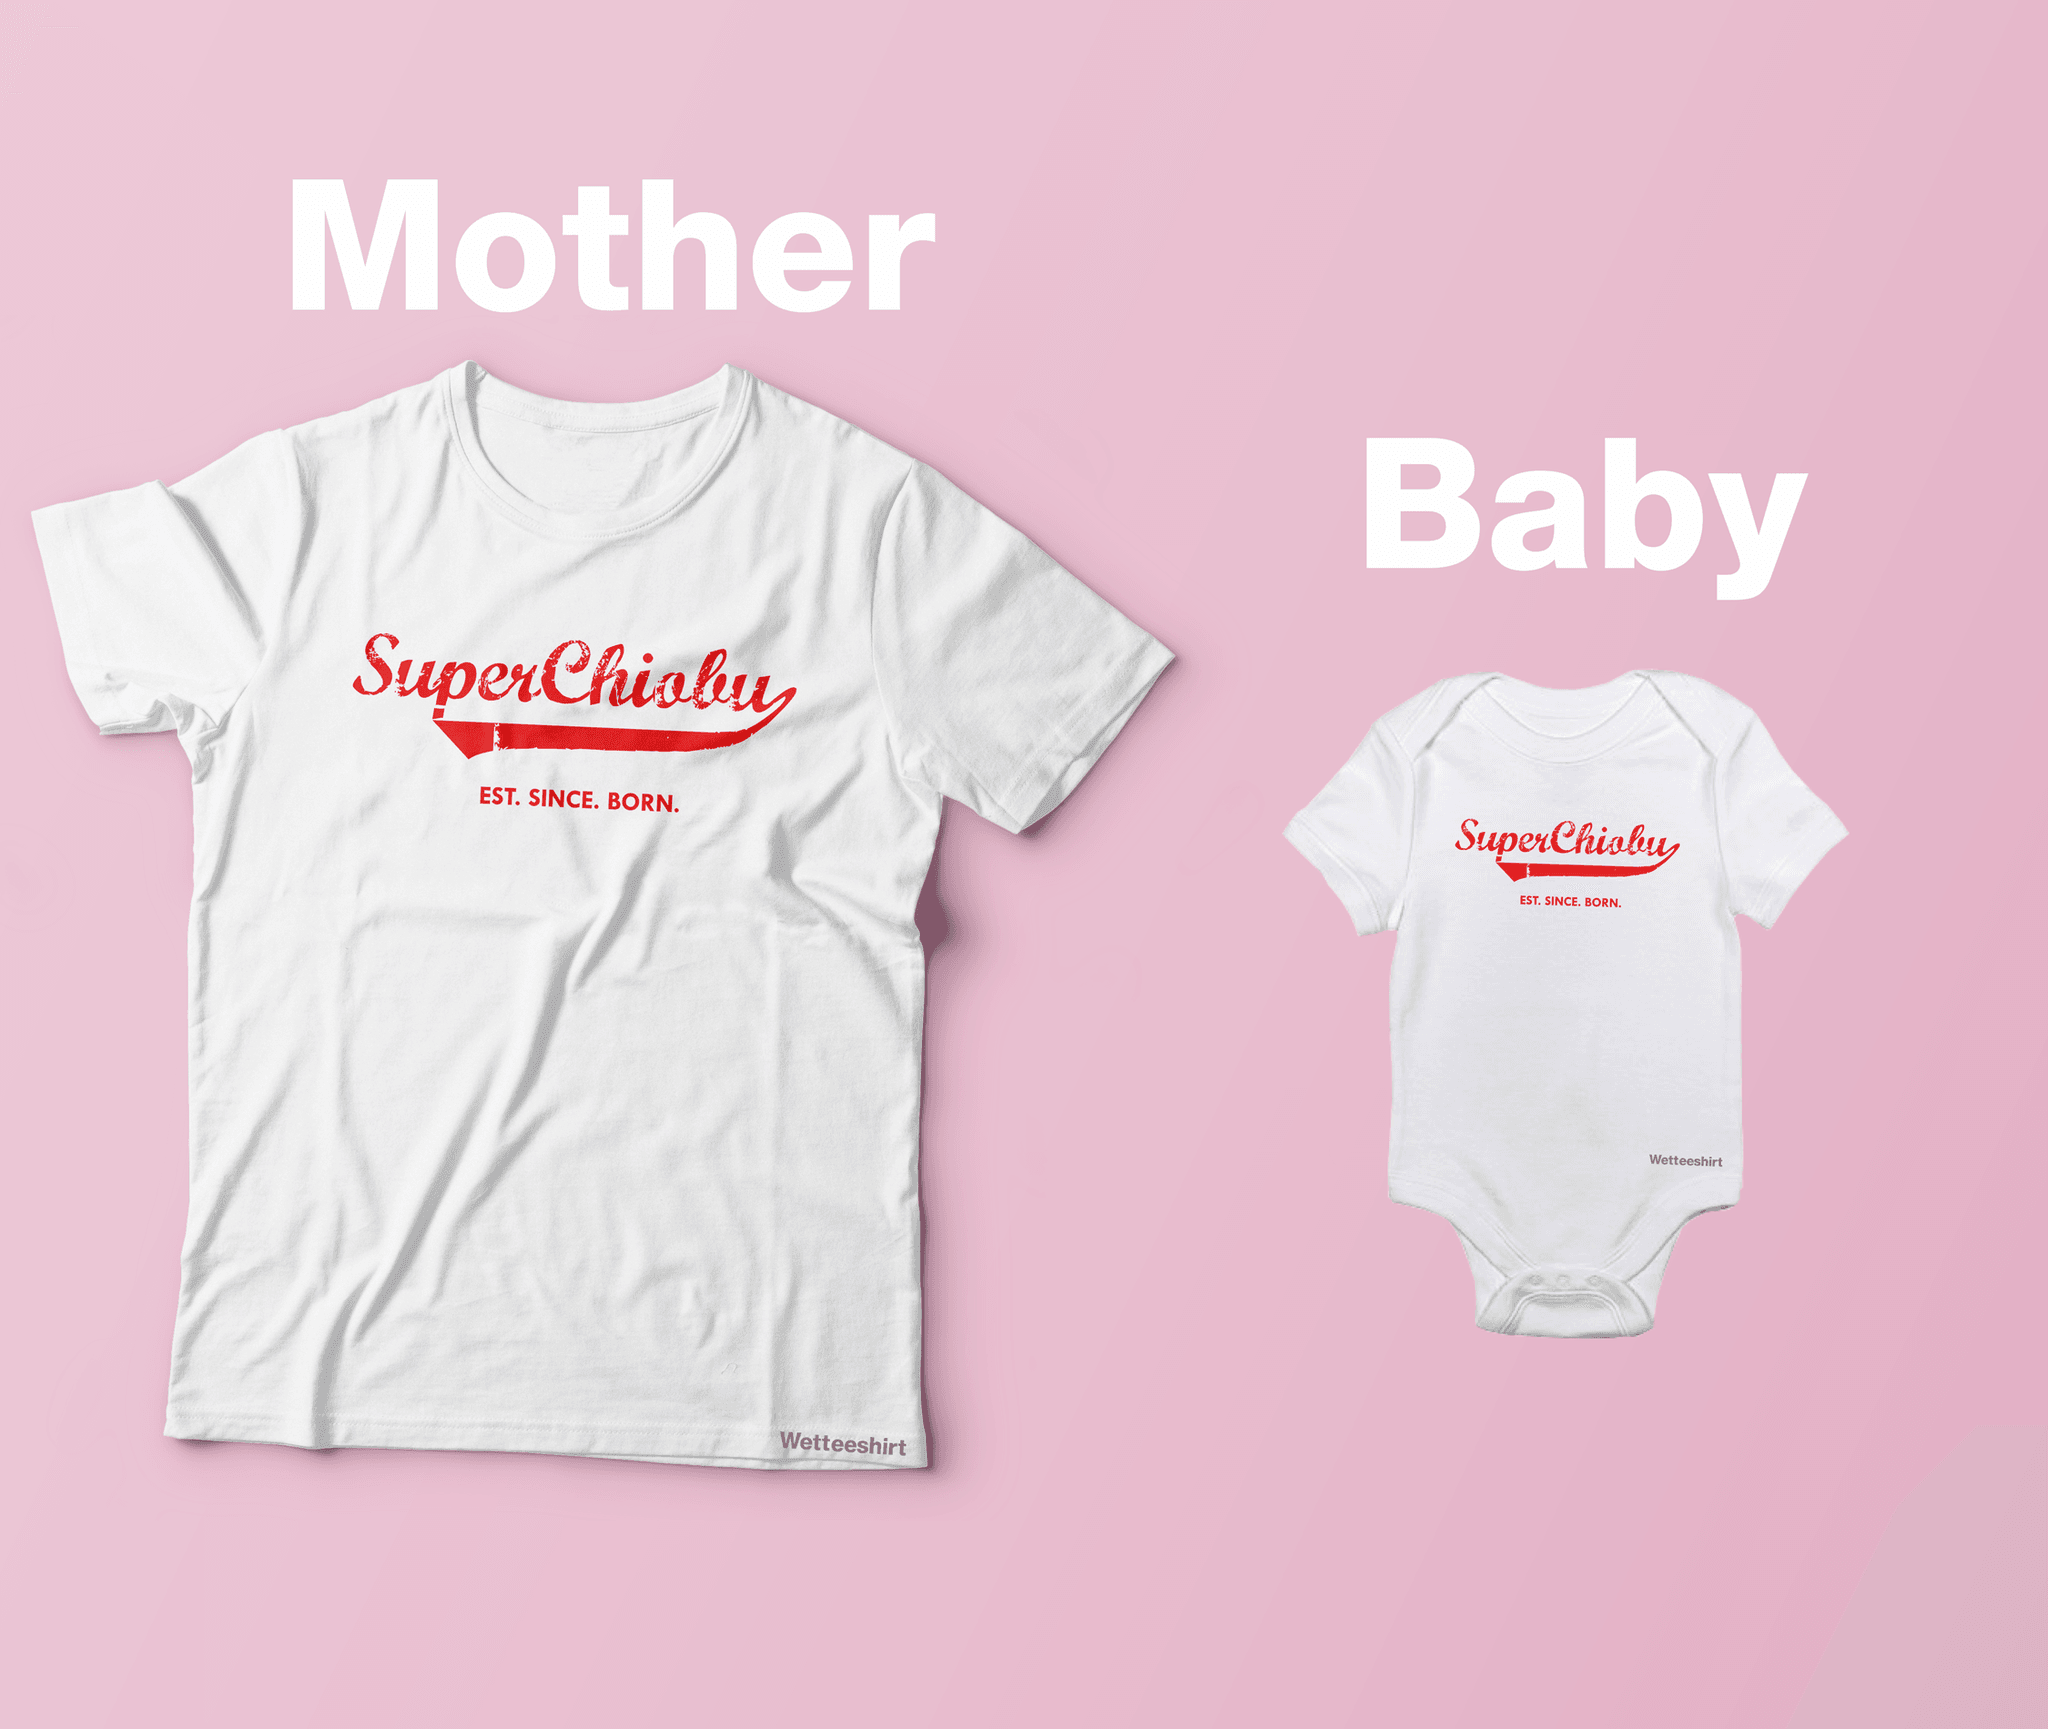 Mother and baby - Superchiobu